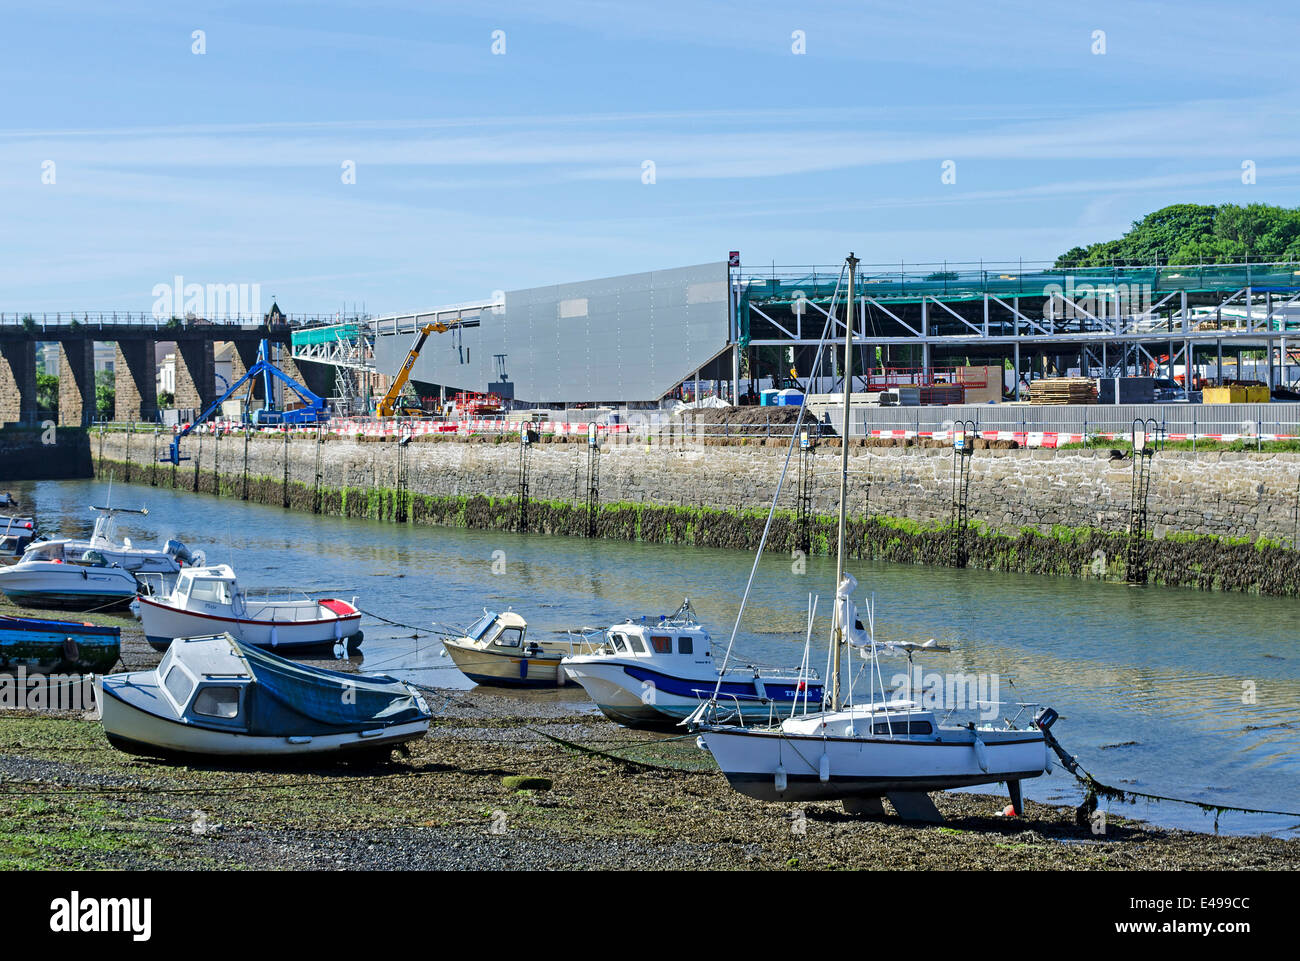 The old harbour in Hayle, Cornwall undergoing a massive redevelopment - Stock Image